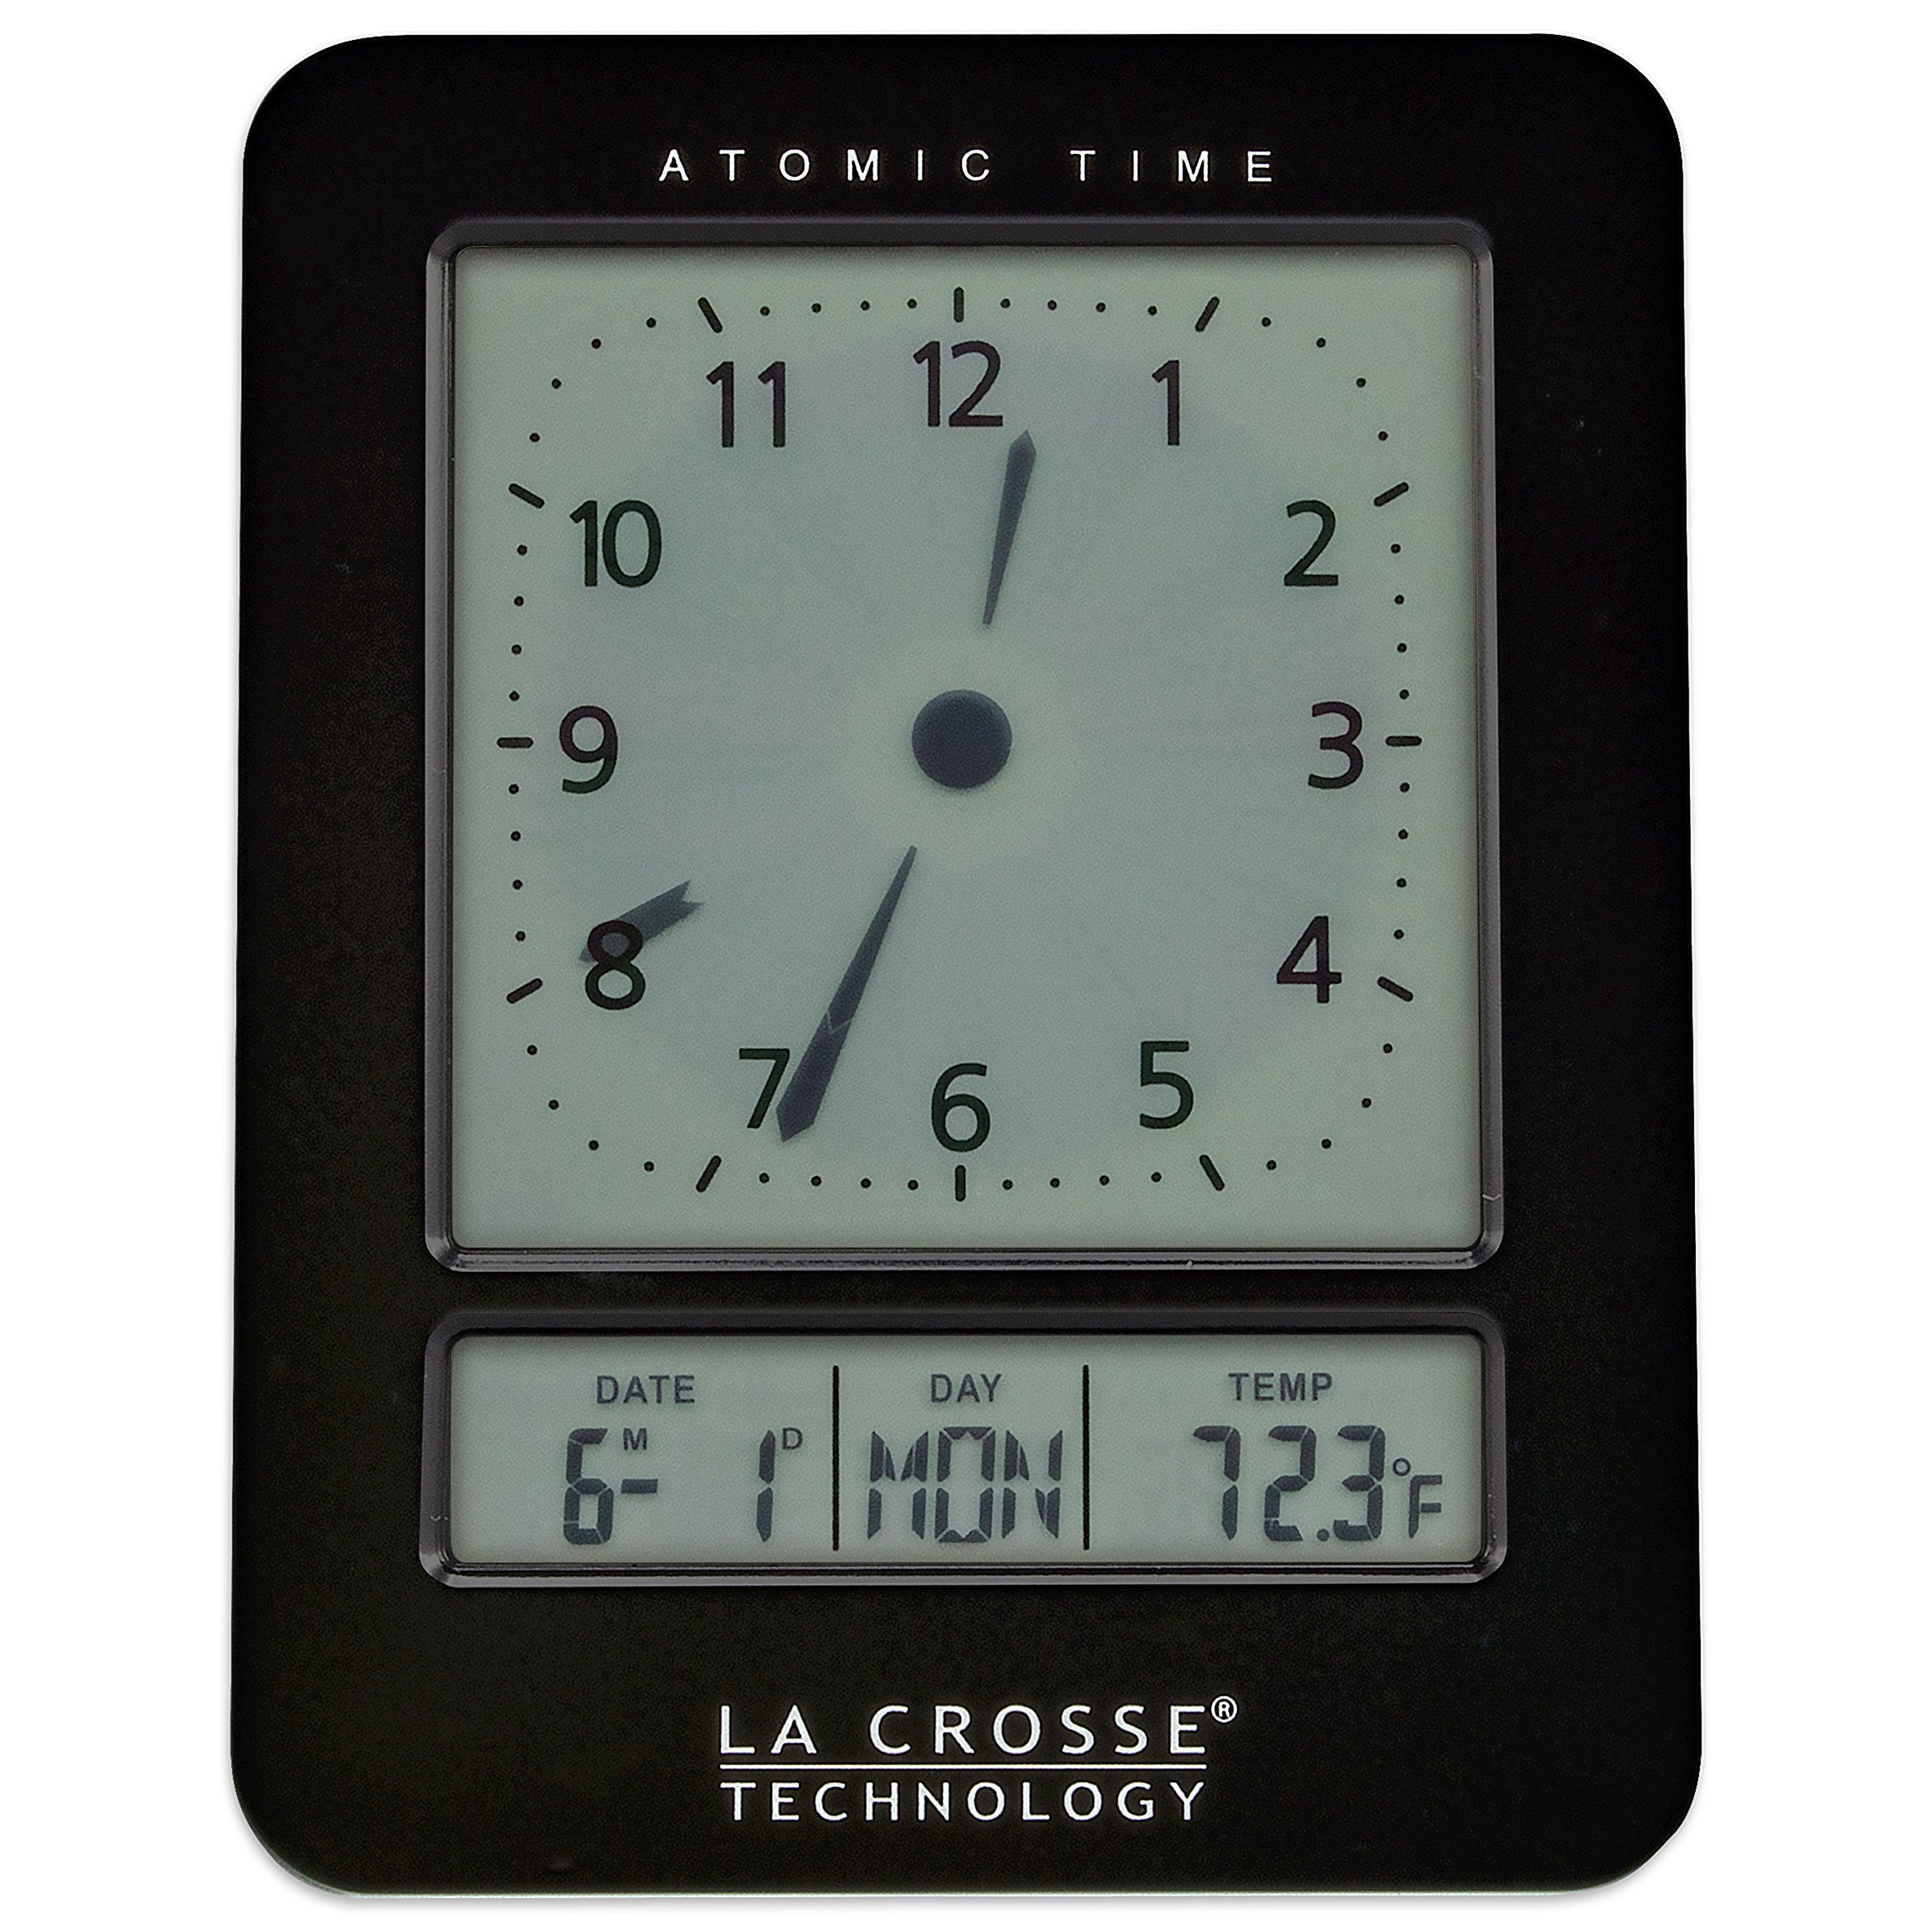 La Crosse Technology 617-1392B Atomic Digital Analog-Style Alarm Clock, Black